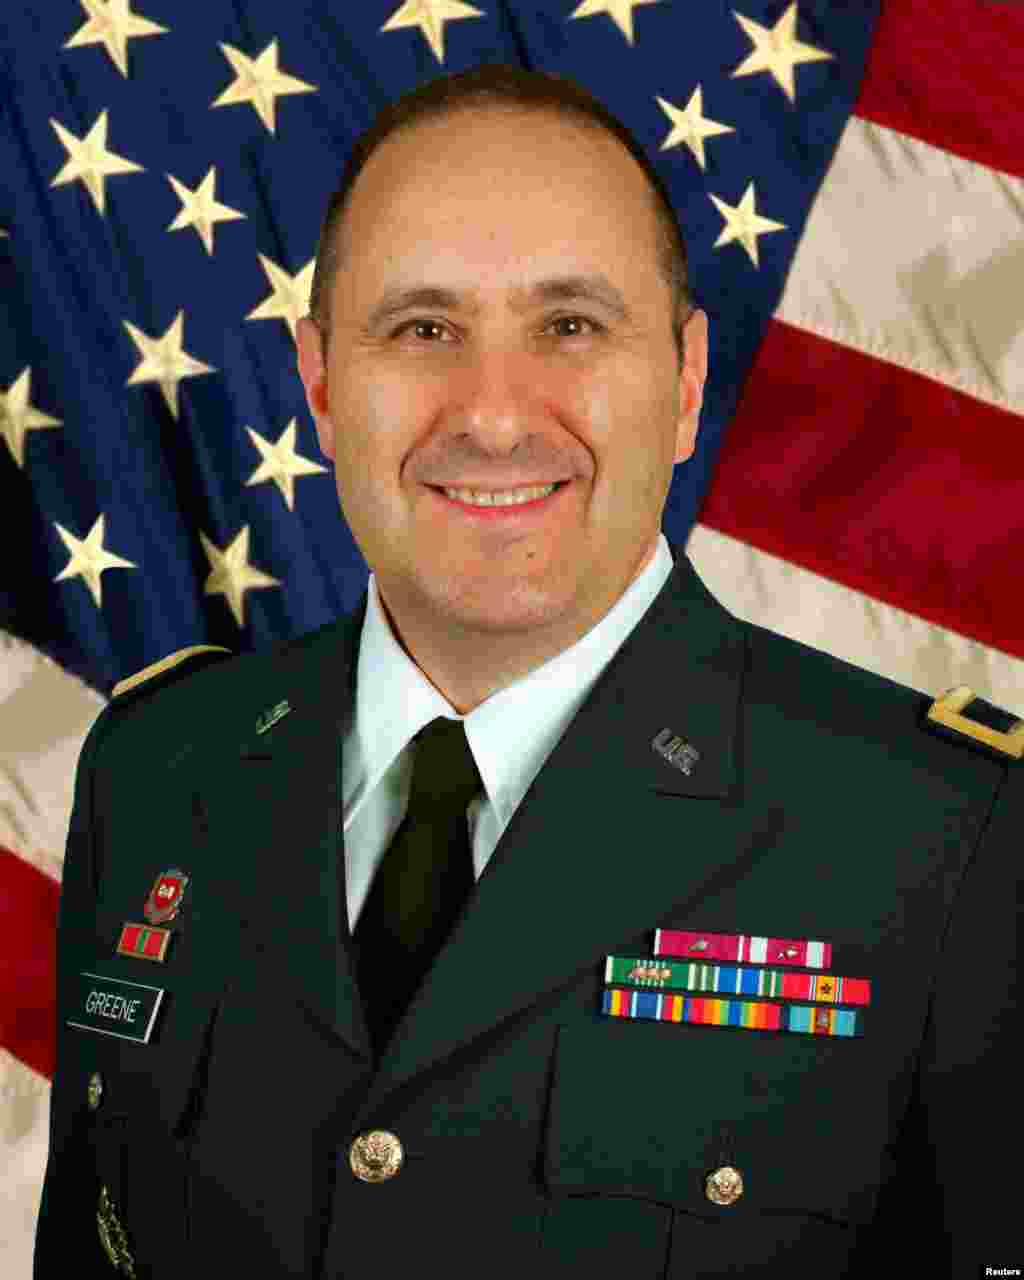 U.S. Army Brigadier General Harold J. Greene,  the two-star Army general who was the highest-ranking U.S. military officer to be killed in either of America's post-9/11 wars. He was an engineer who rose through the ranks as an expert in developing and fielding the Army's war material.